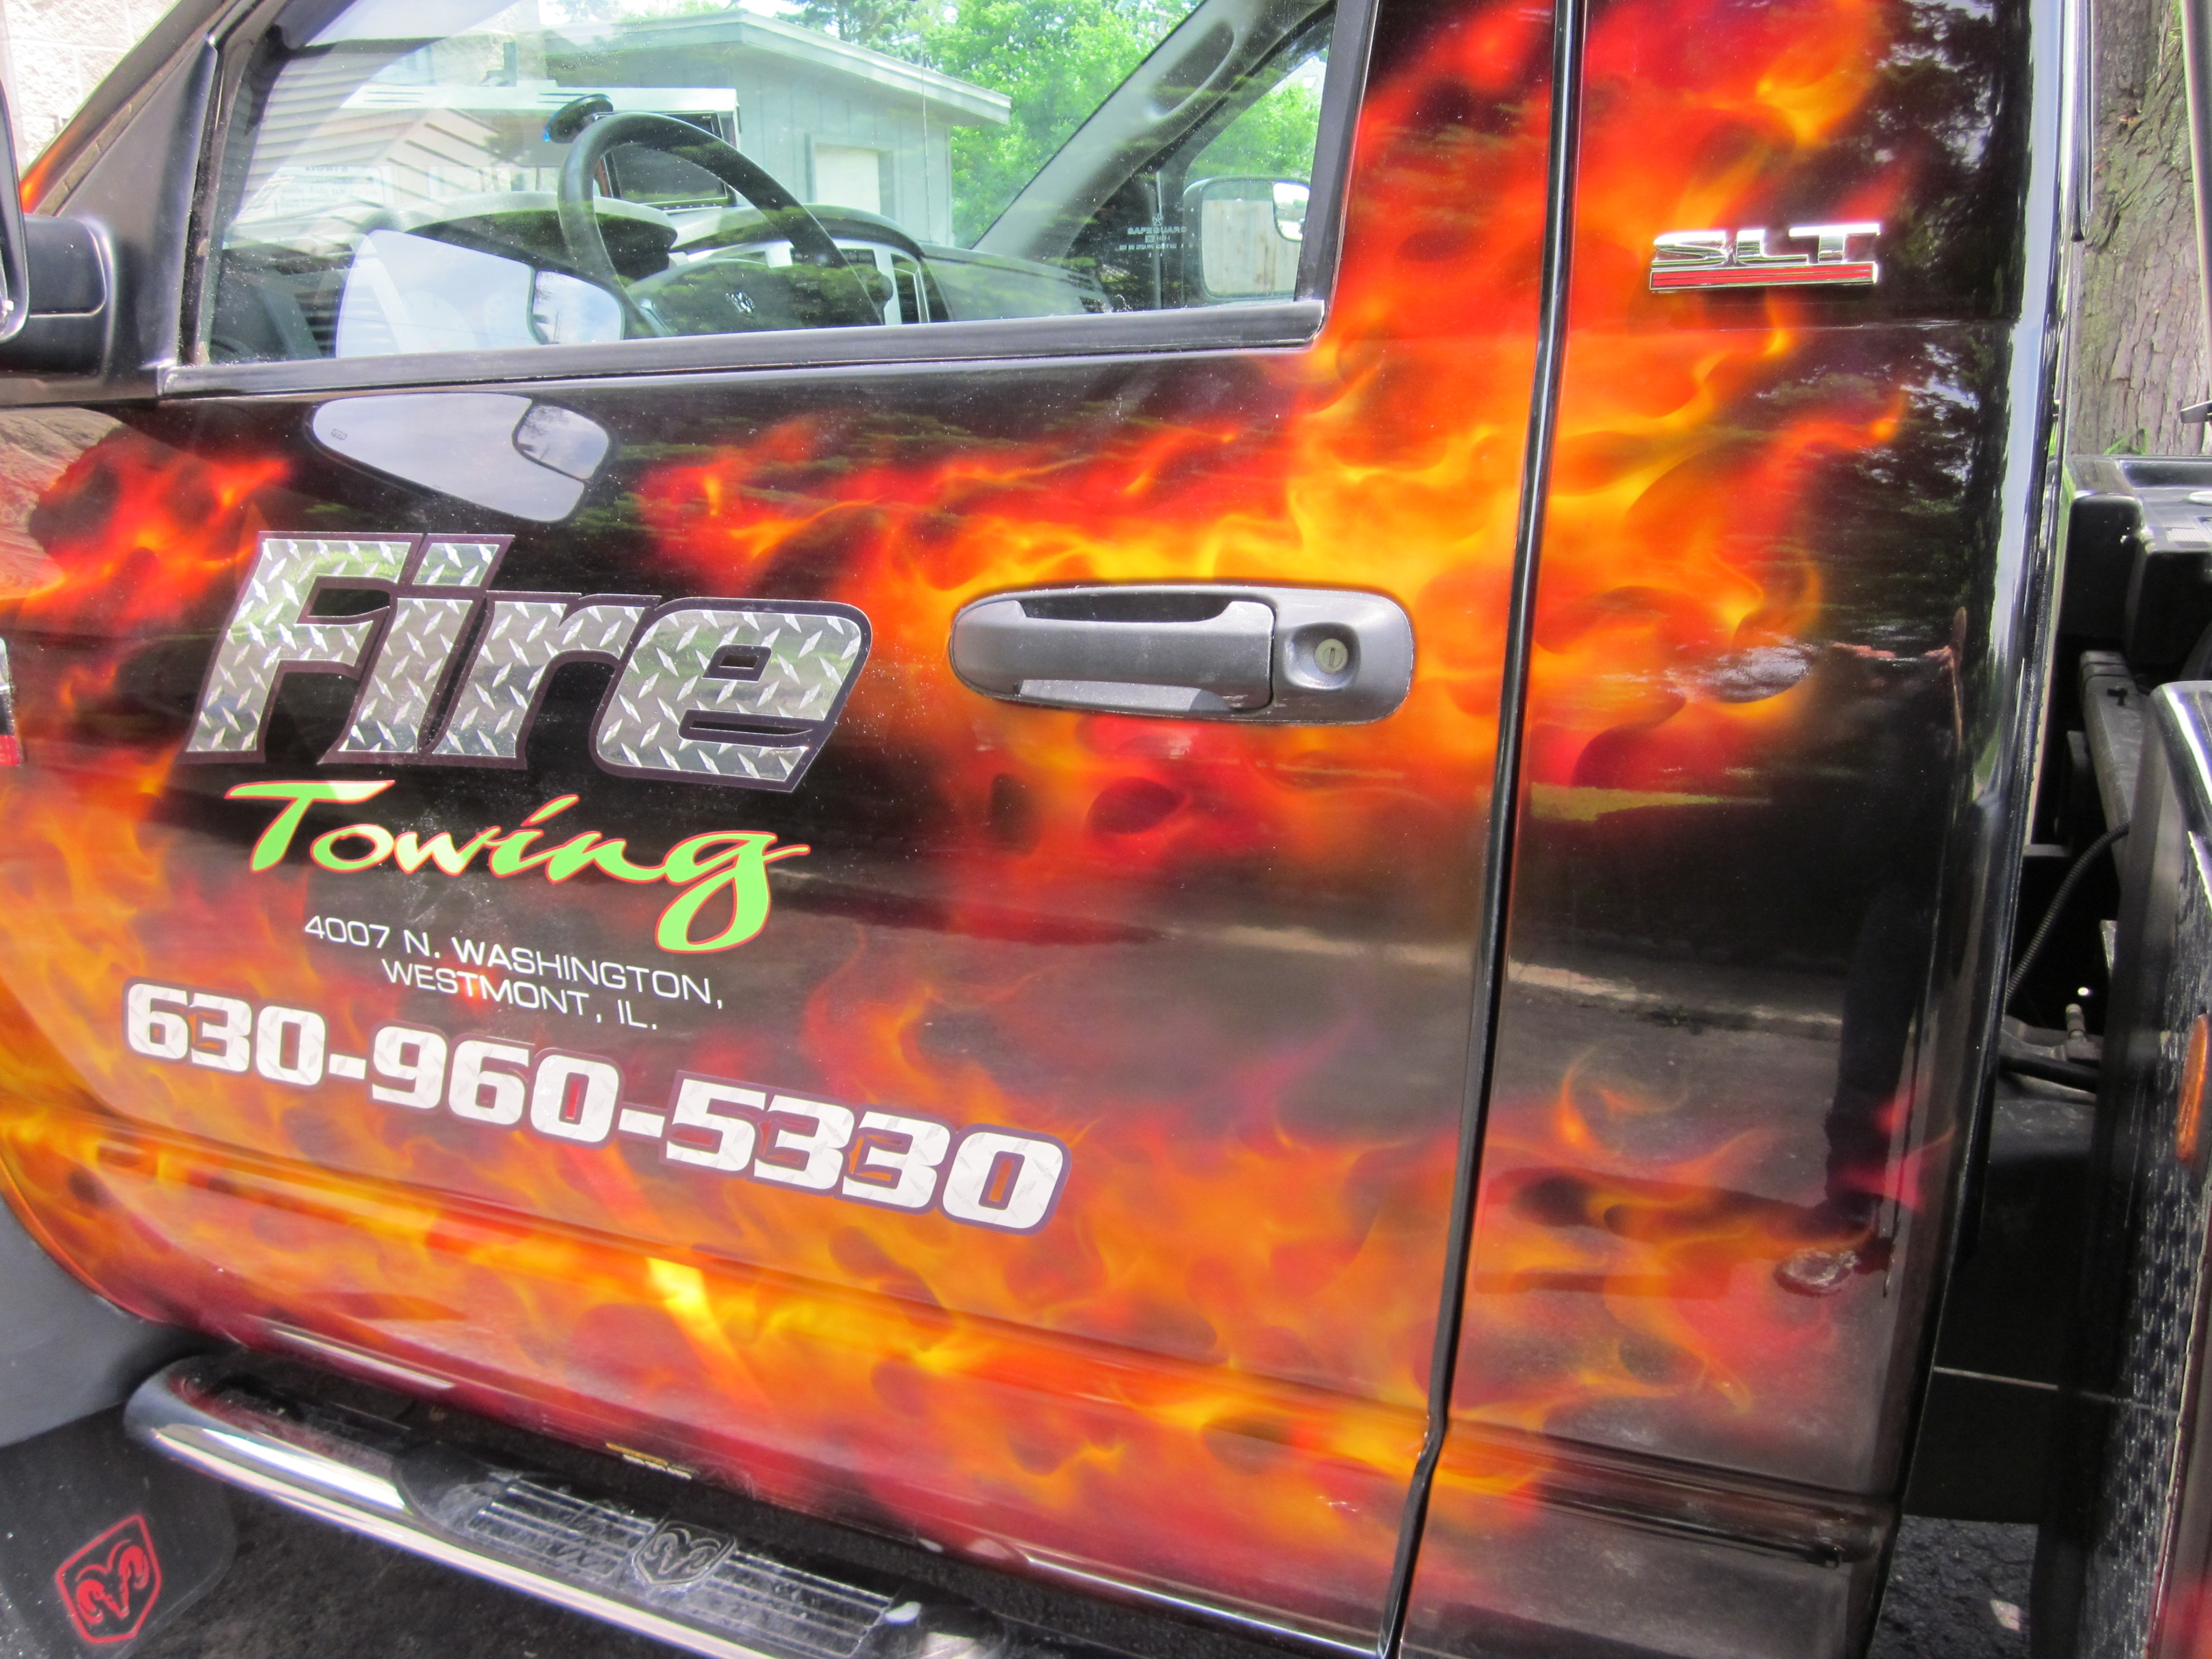 Hinsdale Airbrush Service